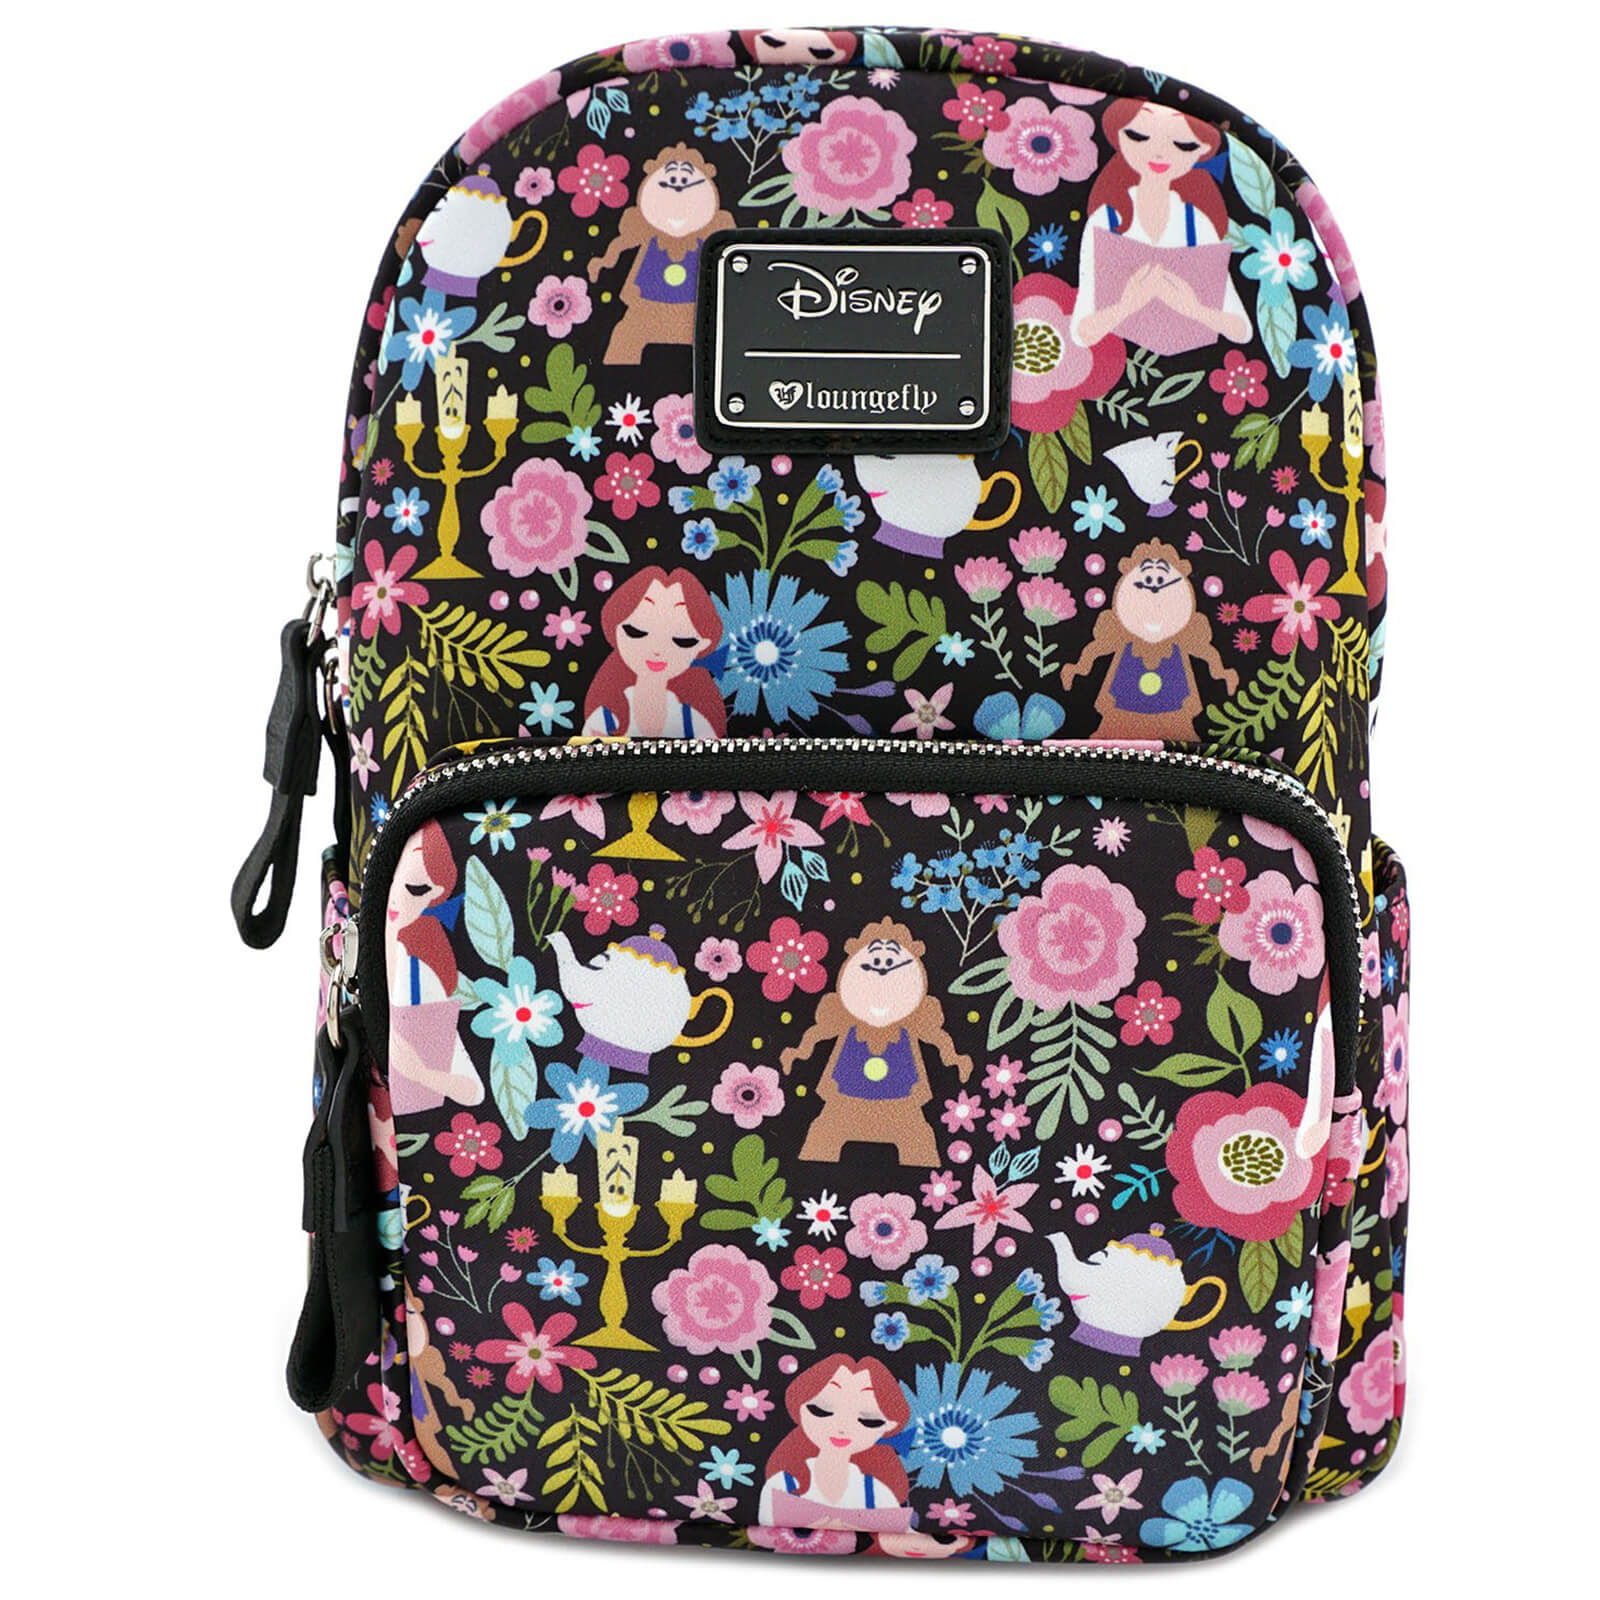 11325845448 Loungefly Disney Beauty and the Beast Belle Floral Aop Mini Backpack  Merchandise